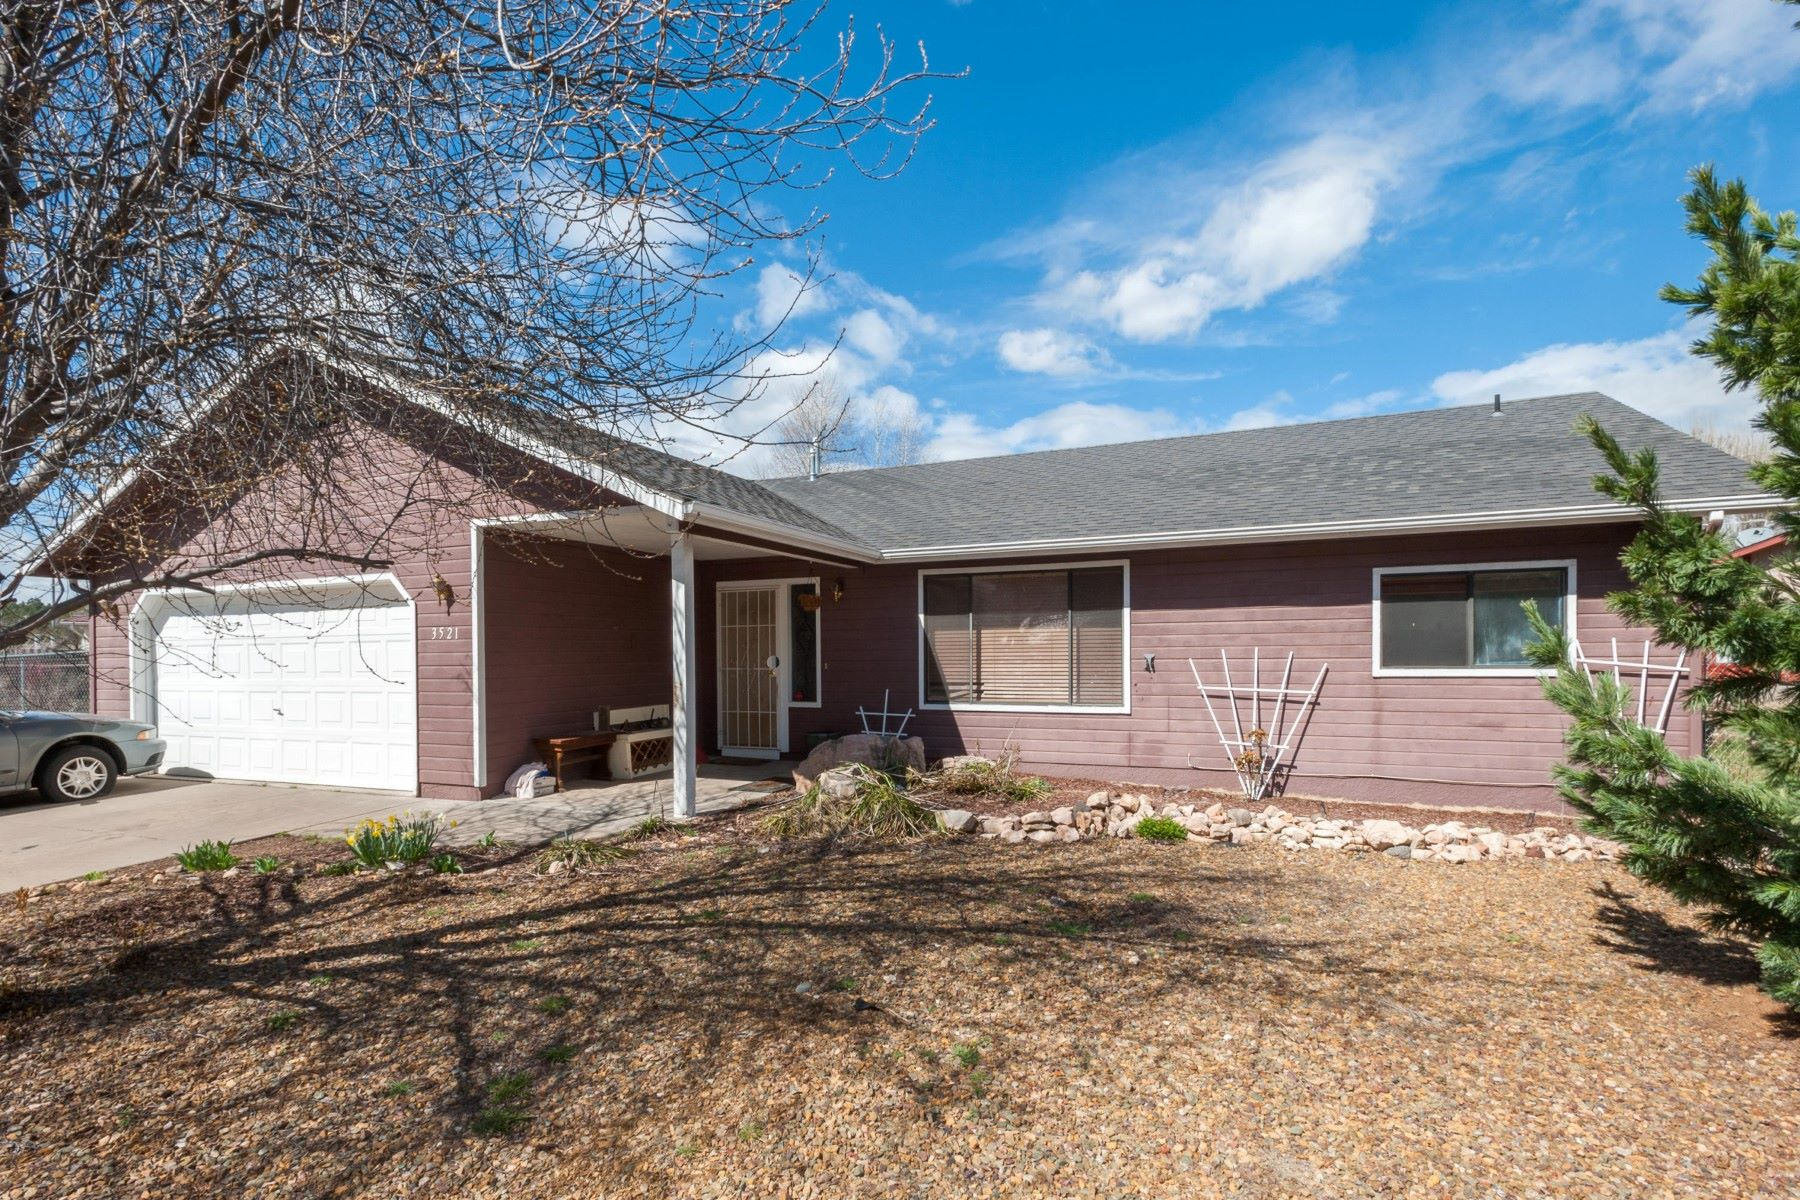 Single Family Home for Sale at Darling 3 bedroom home in beautiful Bow and Arrow Estates 3521 S Walapai Dr Flagstaff, Arizona, 86005 United States